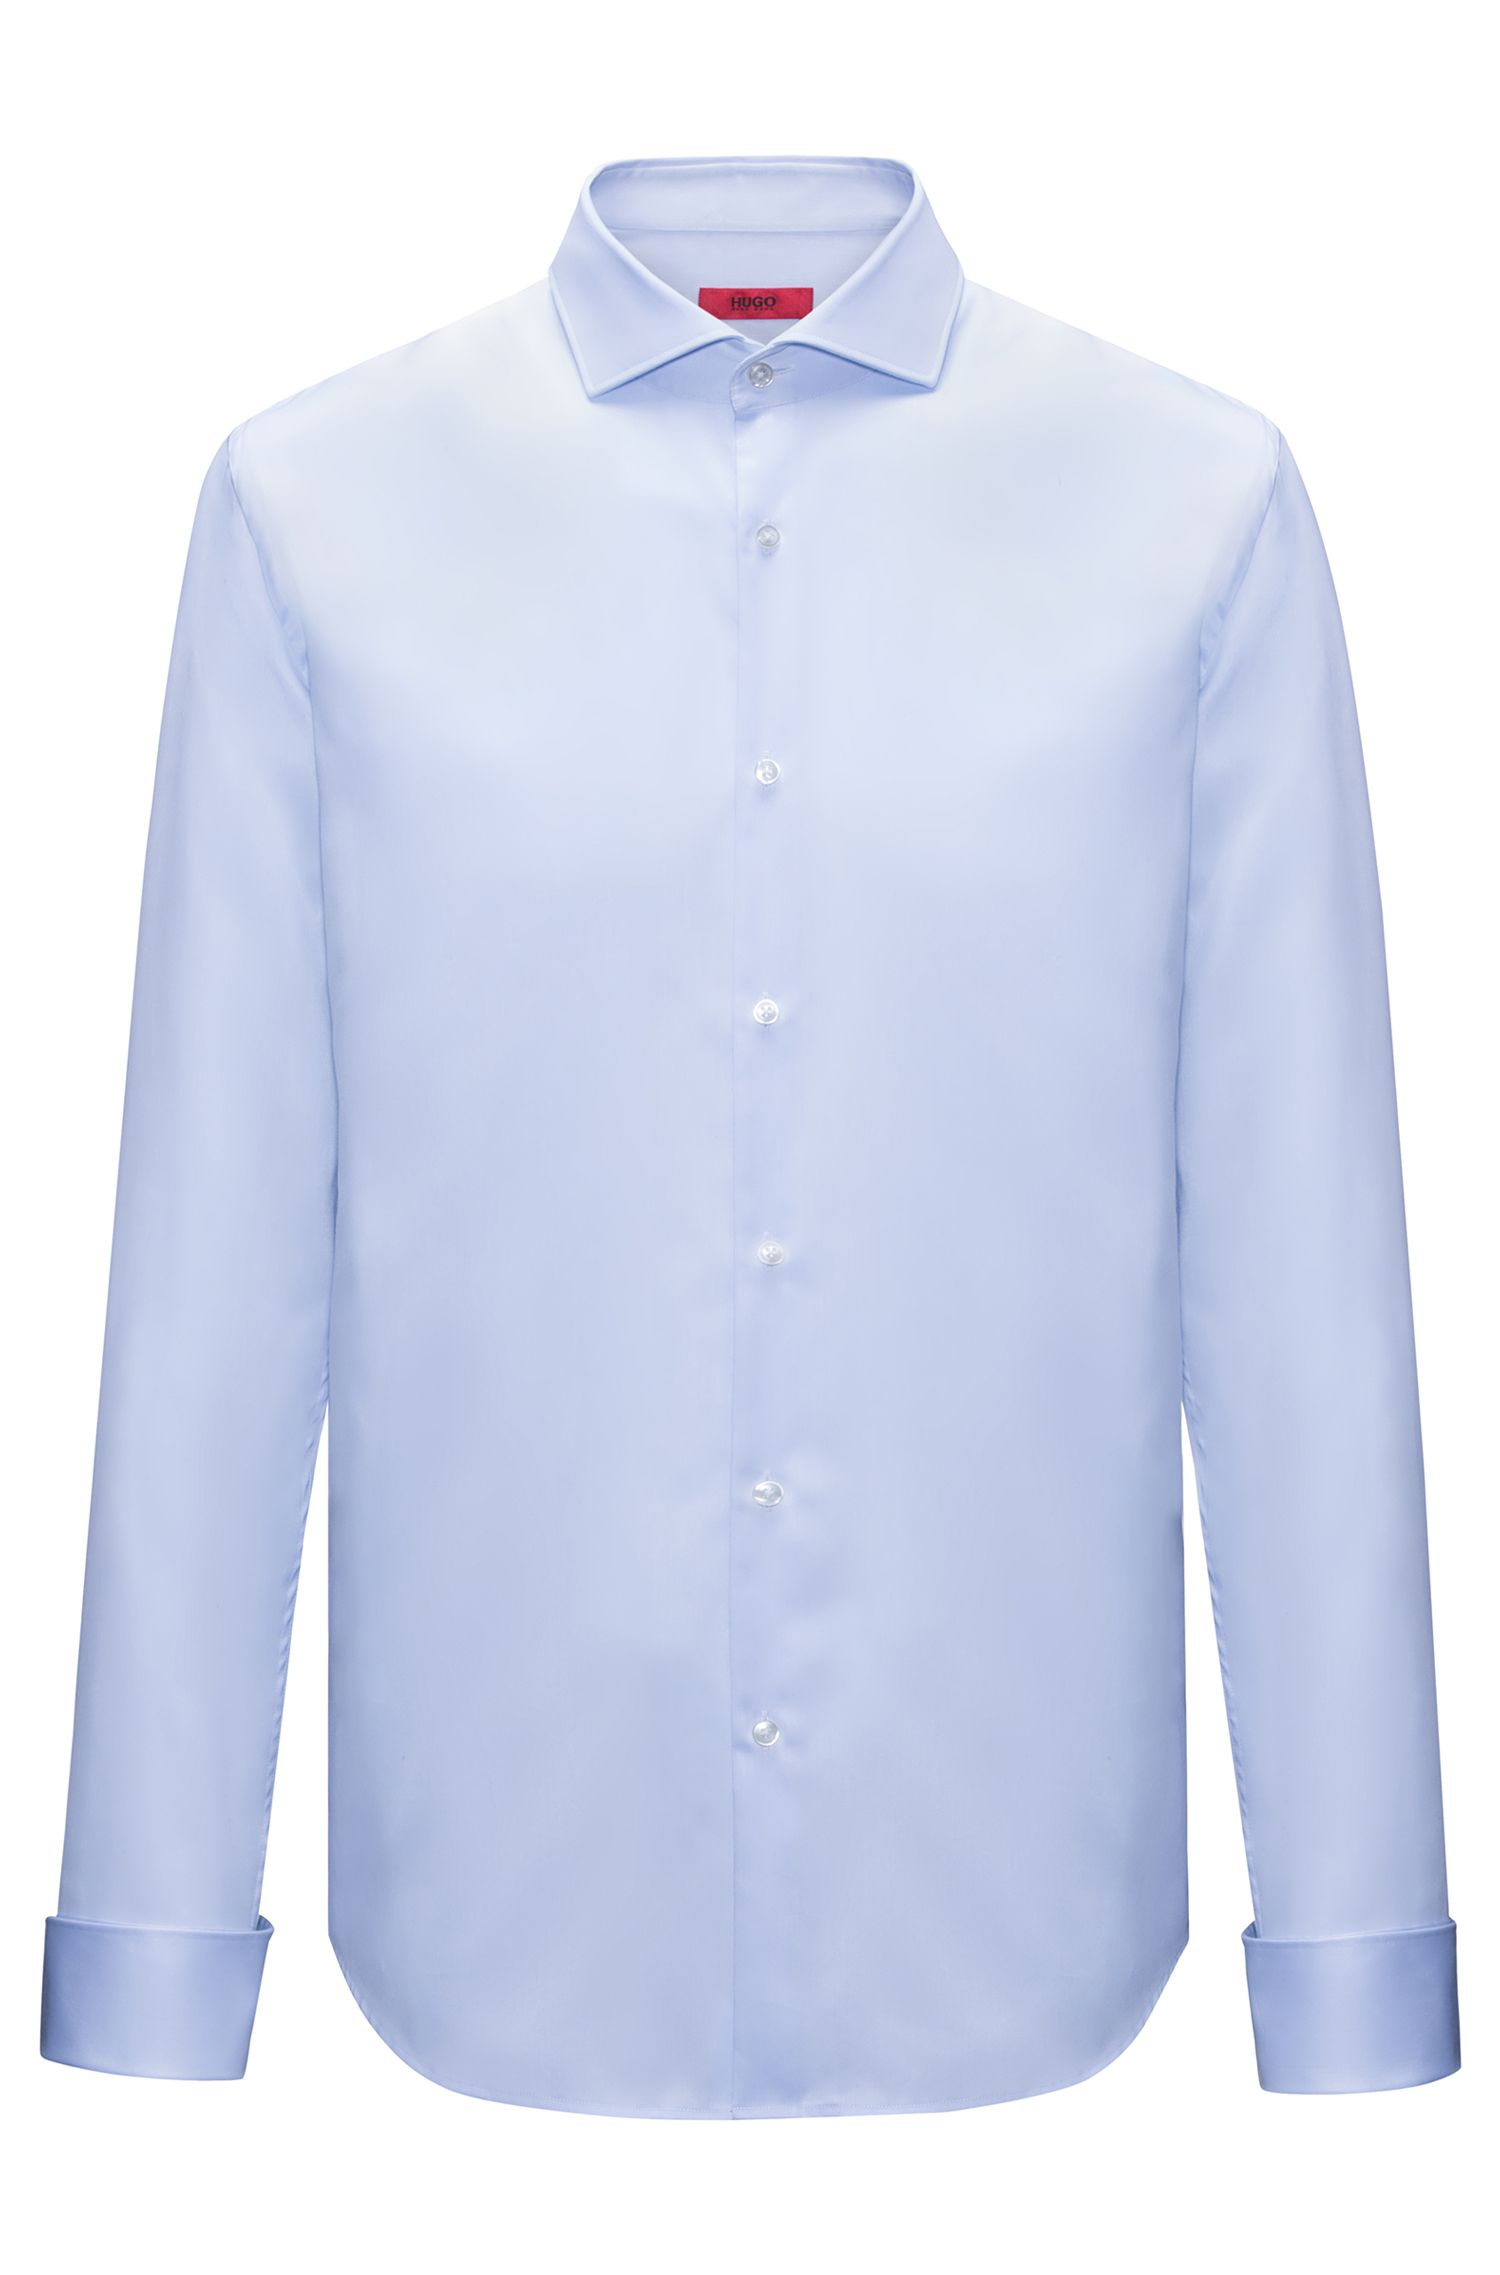 Cotton evening shirt in a slim fit